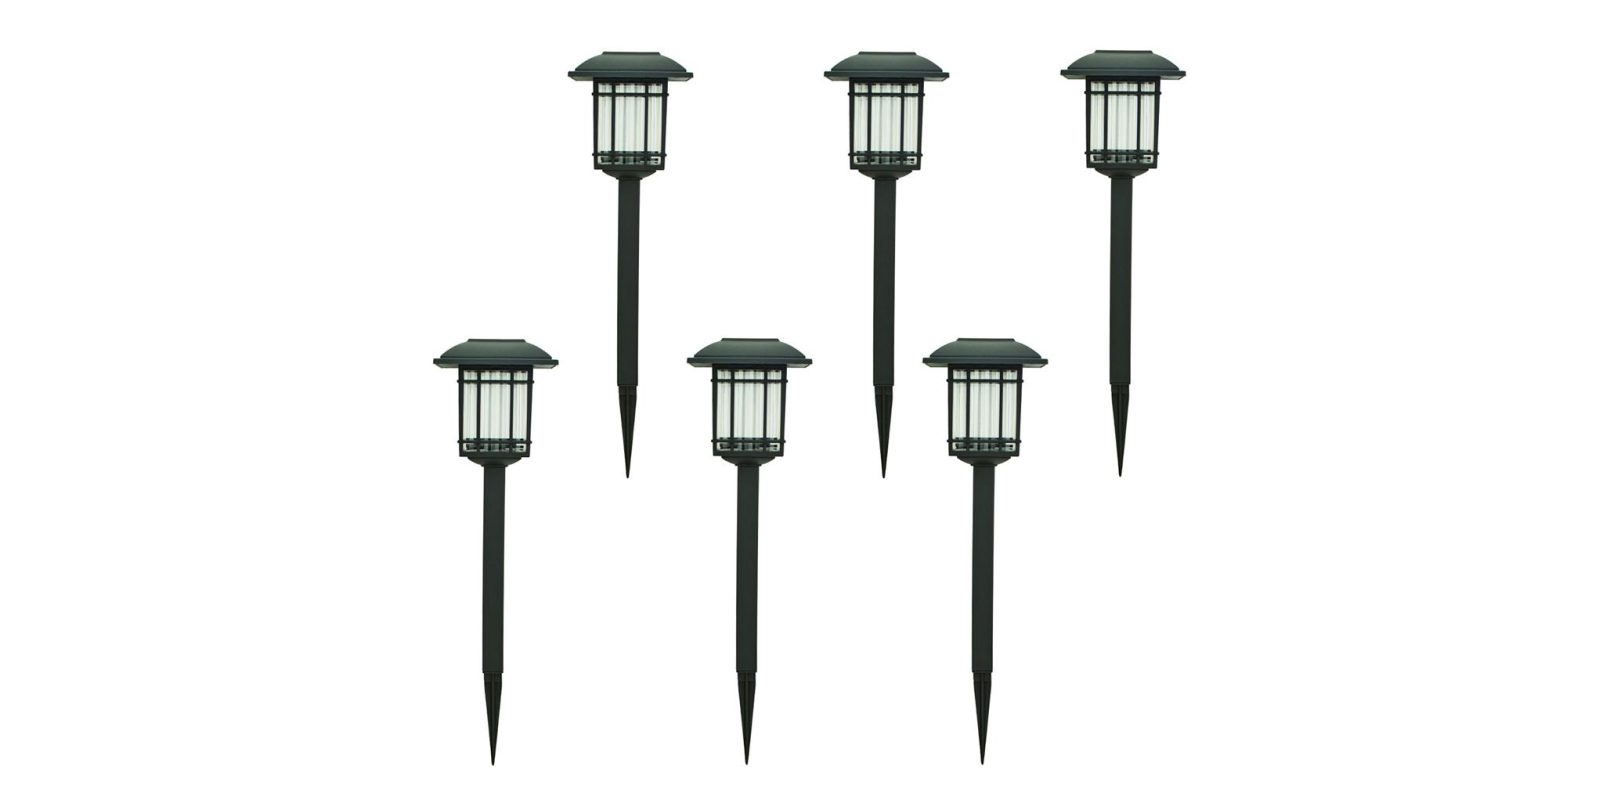 Green Deals: 6-pack Hampton Bay Solar LED Lights $12, more